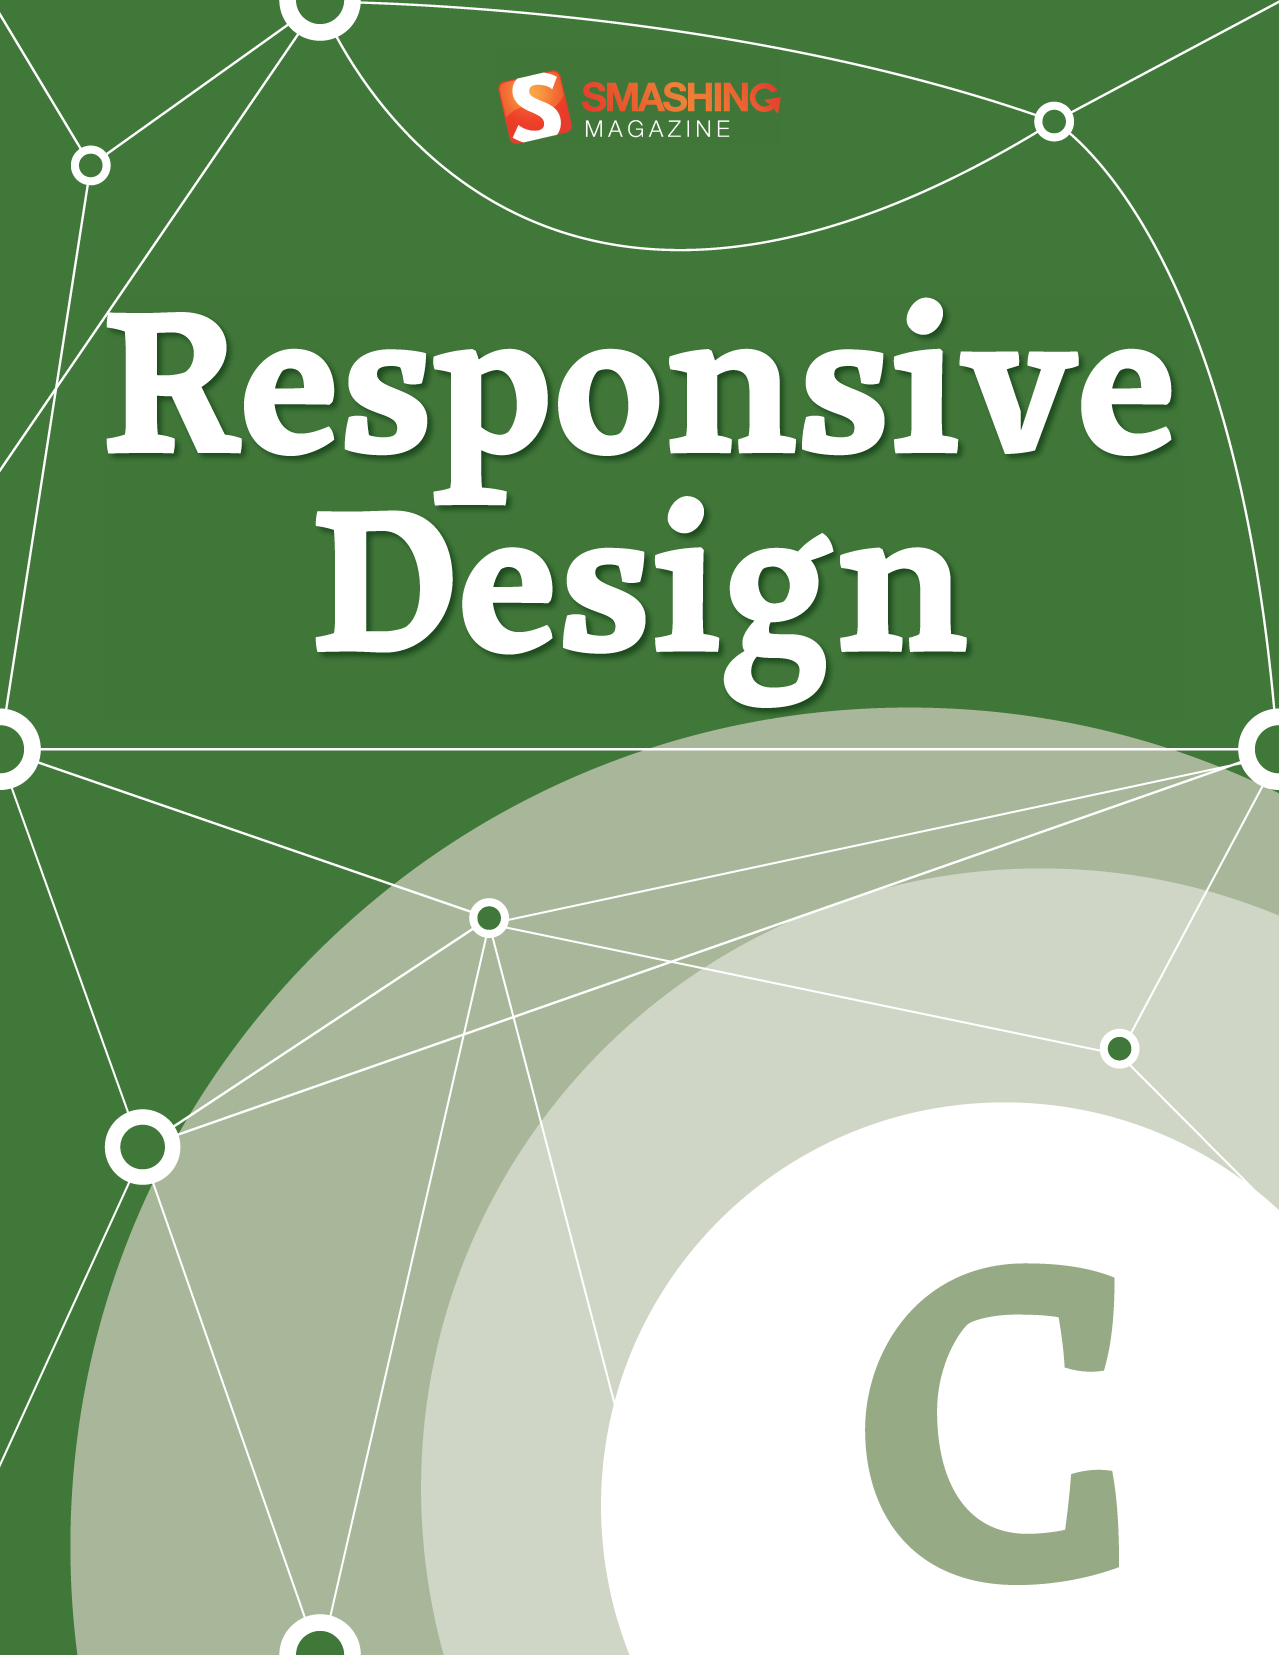 Responsive Design By: Smashing Magazine